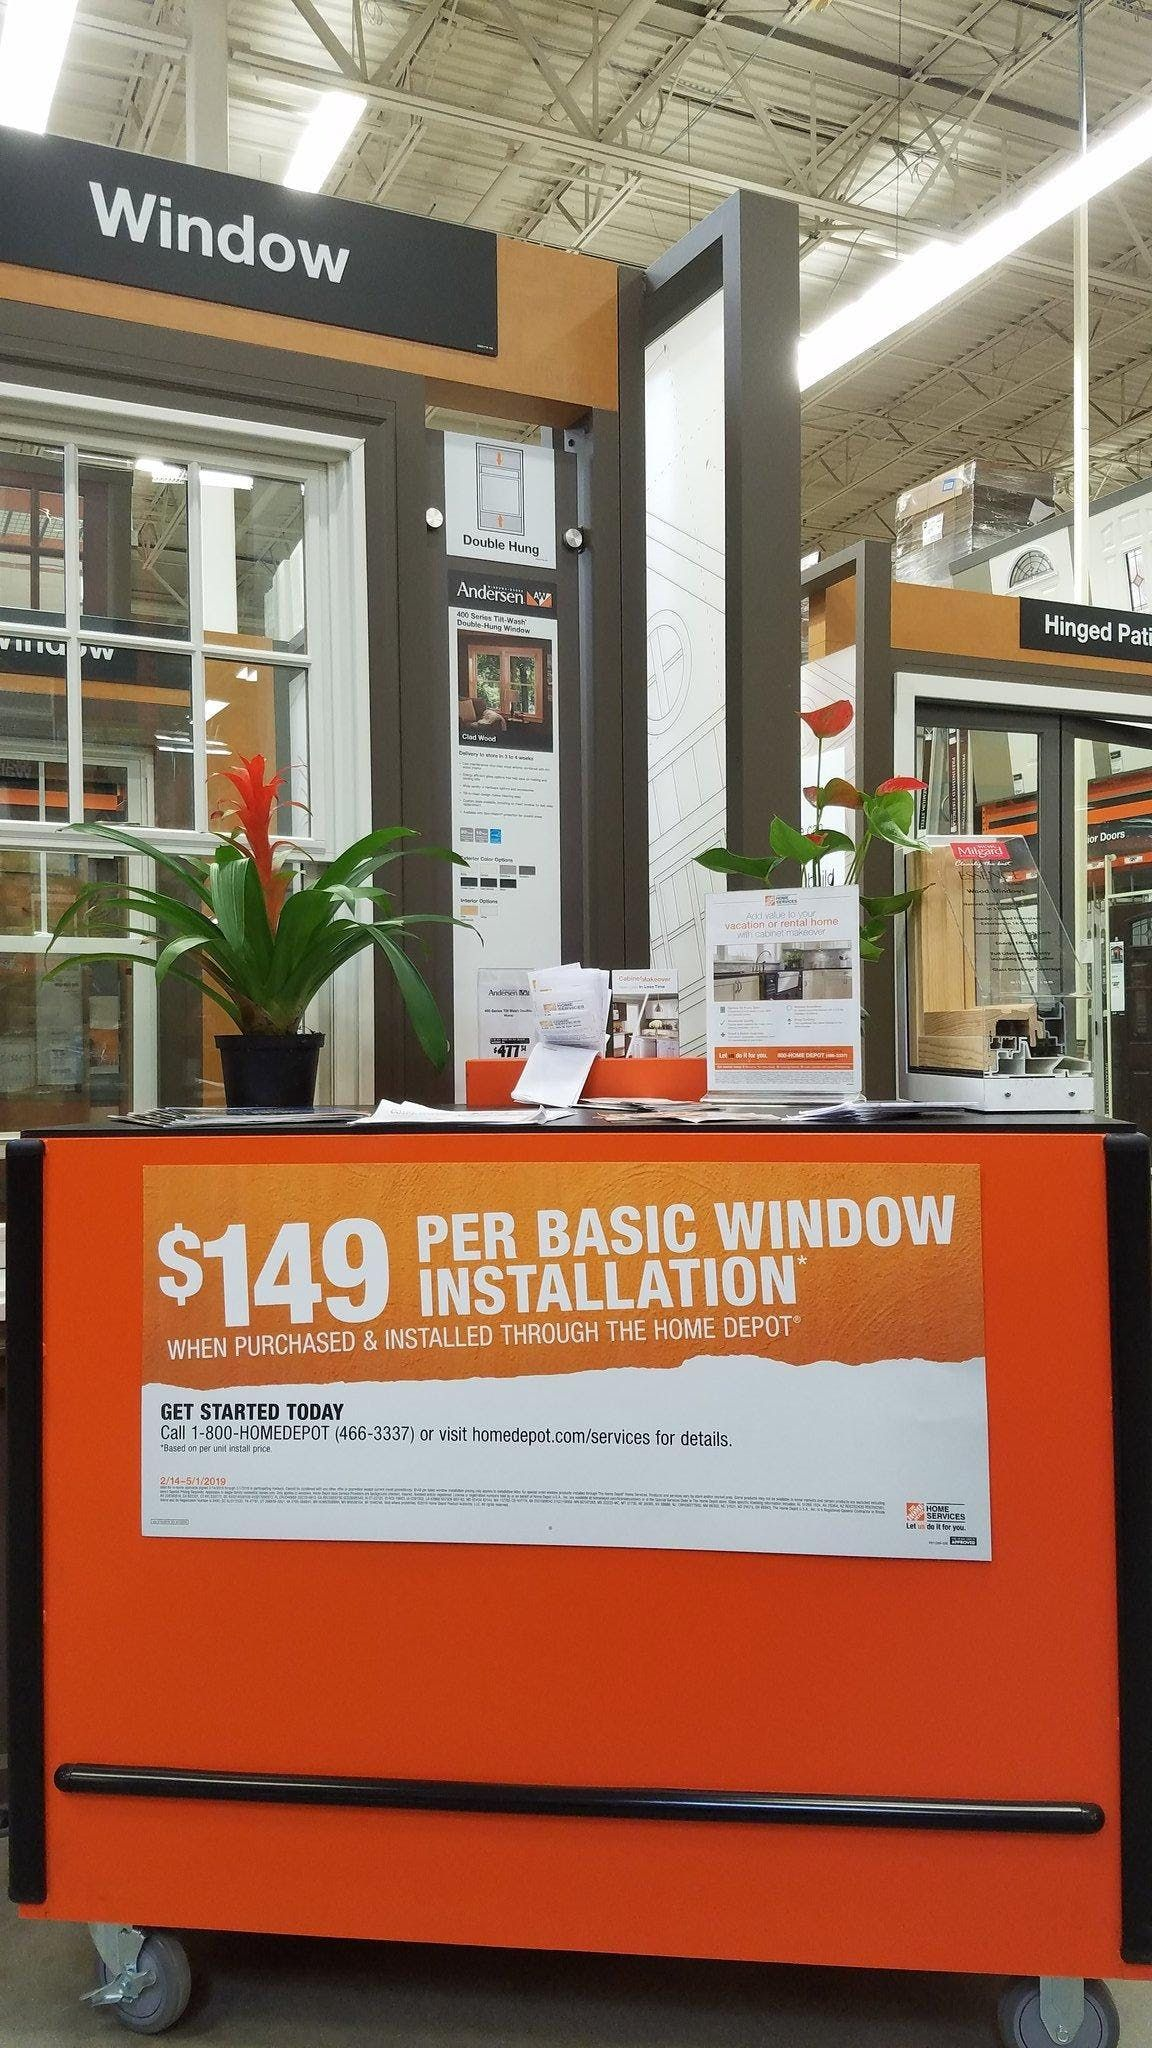 149 Window Install Campaign